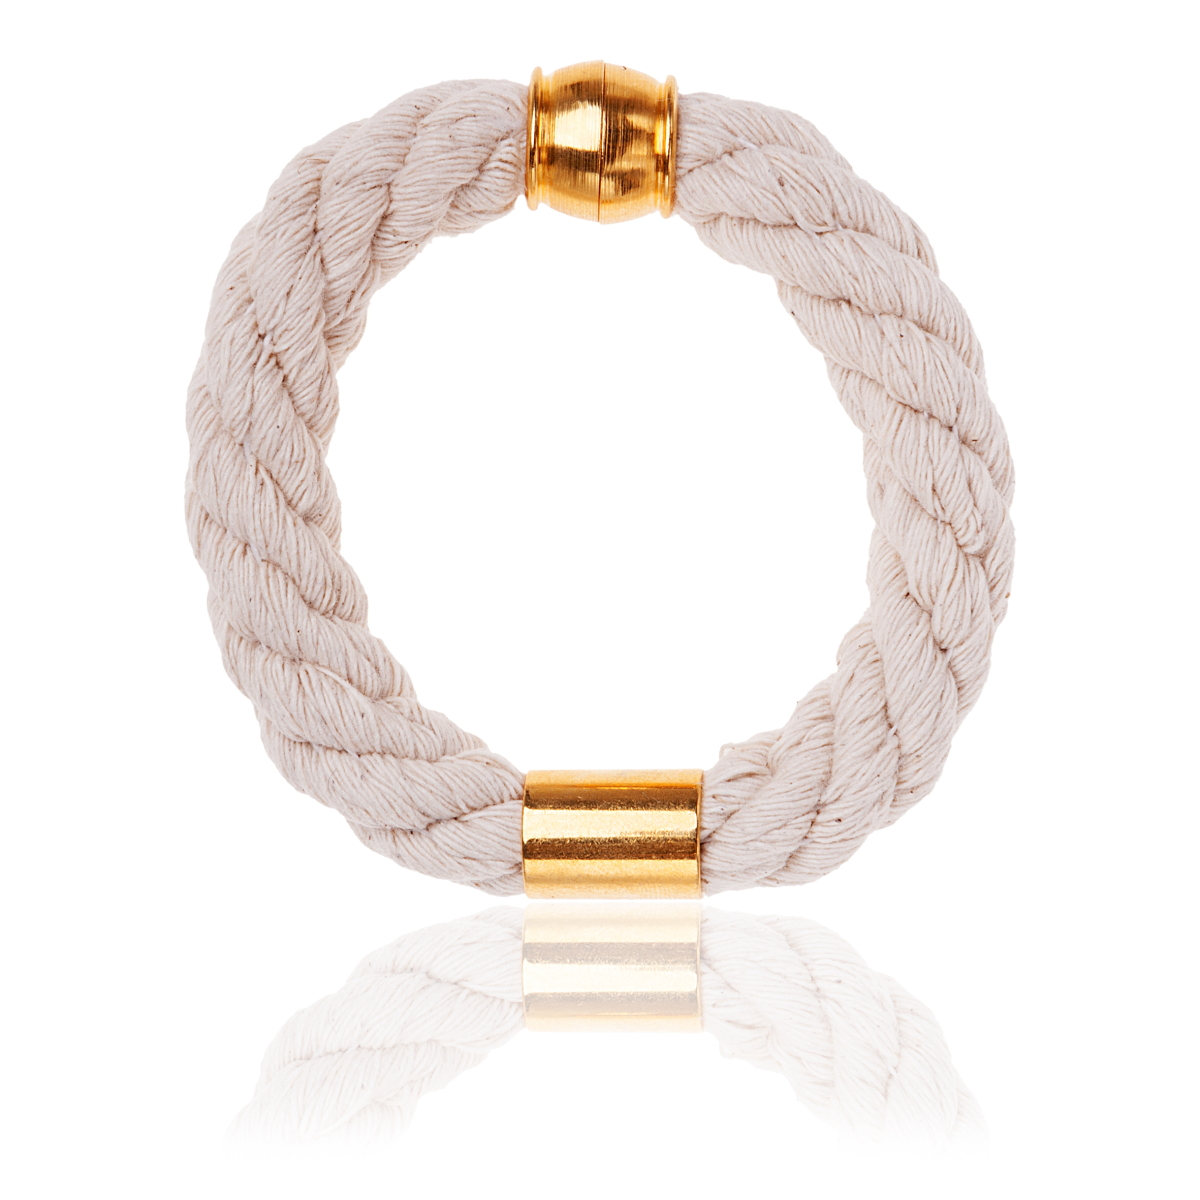 IRIS: Make a statement bracelet / Nude & Gold | Accessories,Jewelry > Bracelets,Jewelry -  Hiphunters Shop